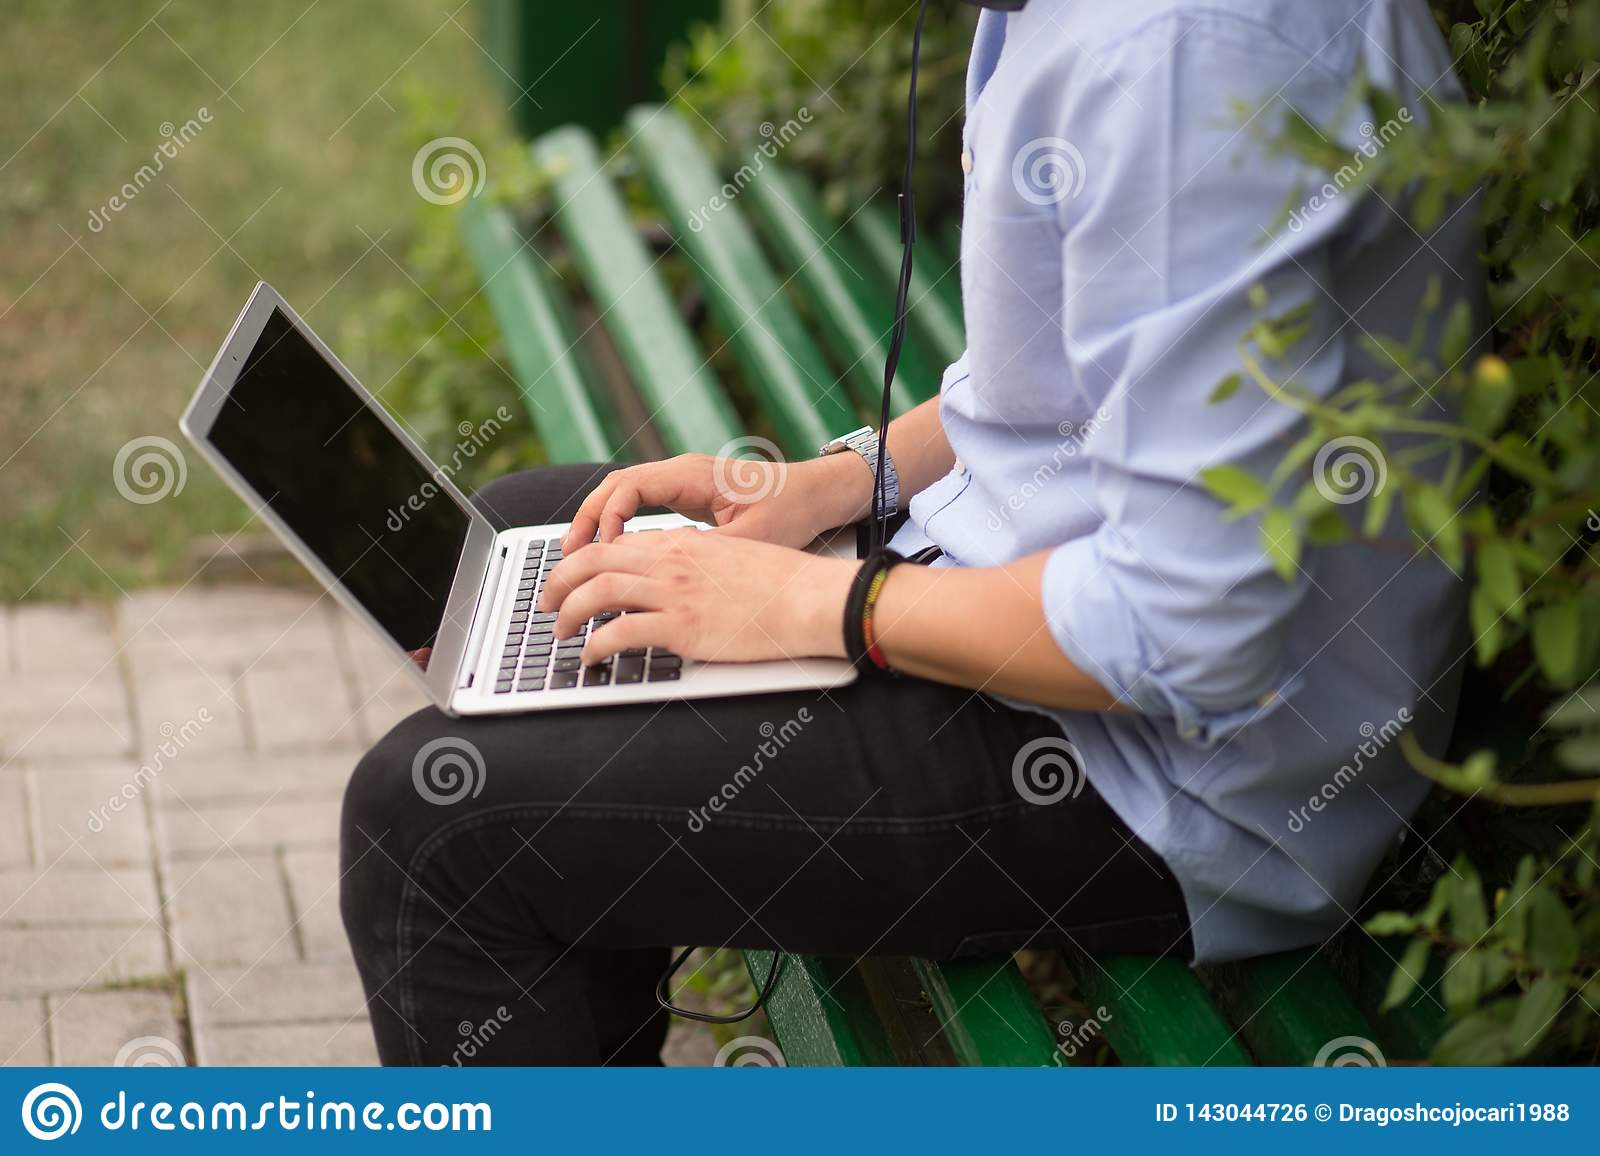 Cropped image of young man sitting at on the bench in the park, using a laptop.